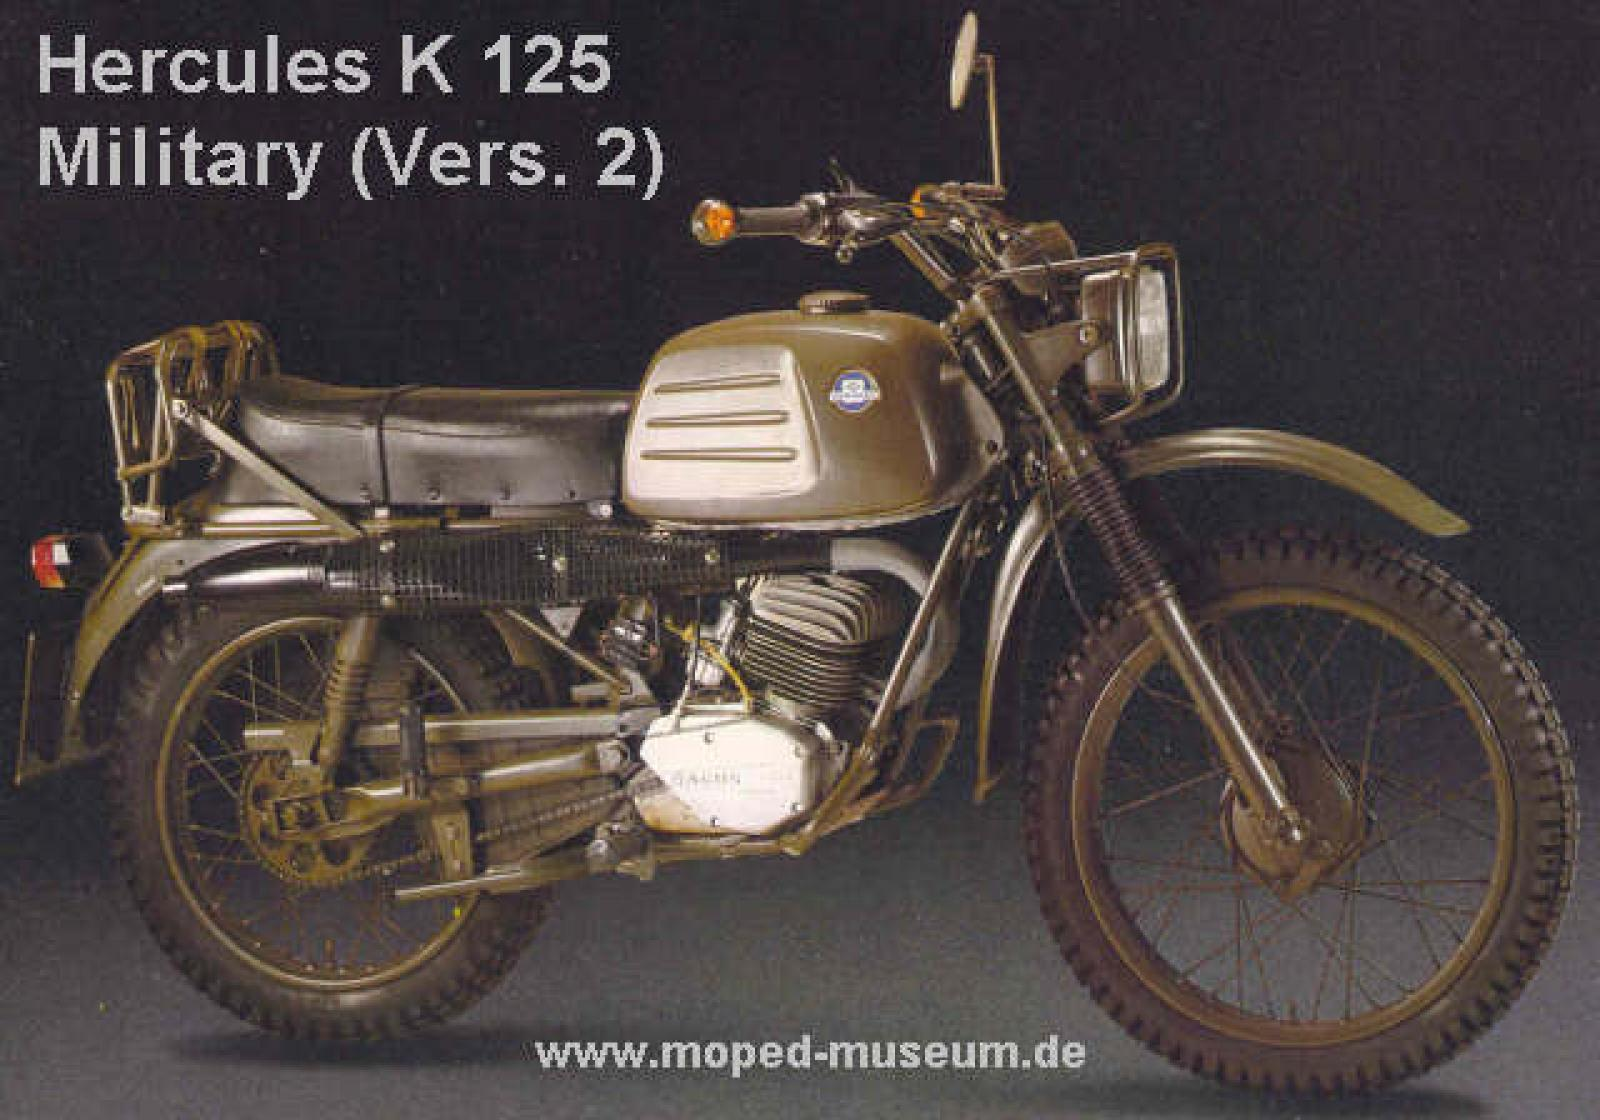 Hercules K 125 Military 1989 images #74673